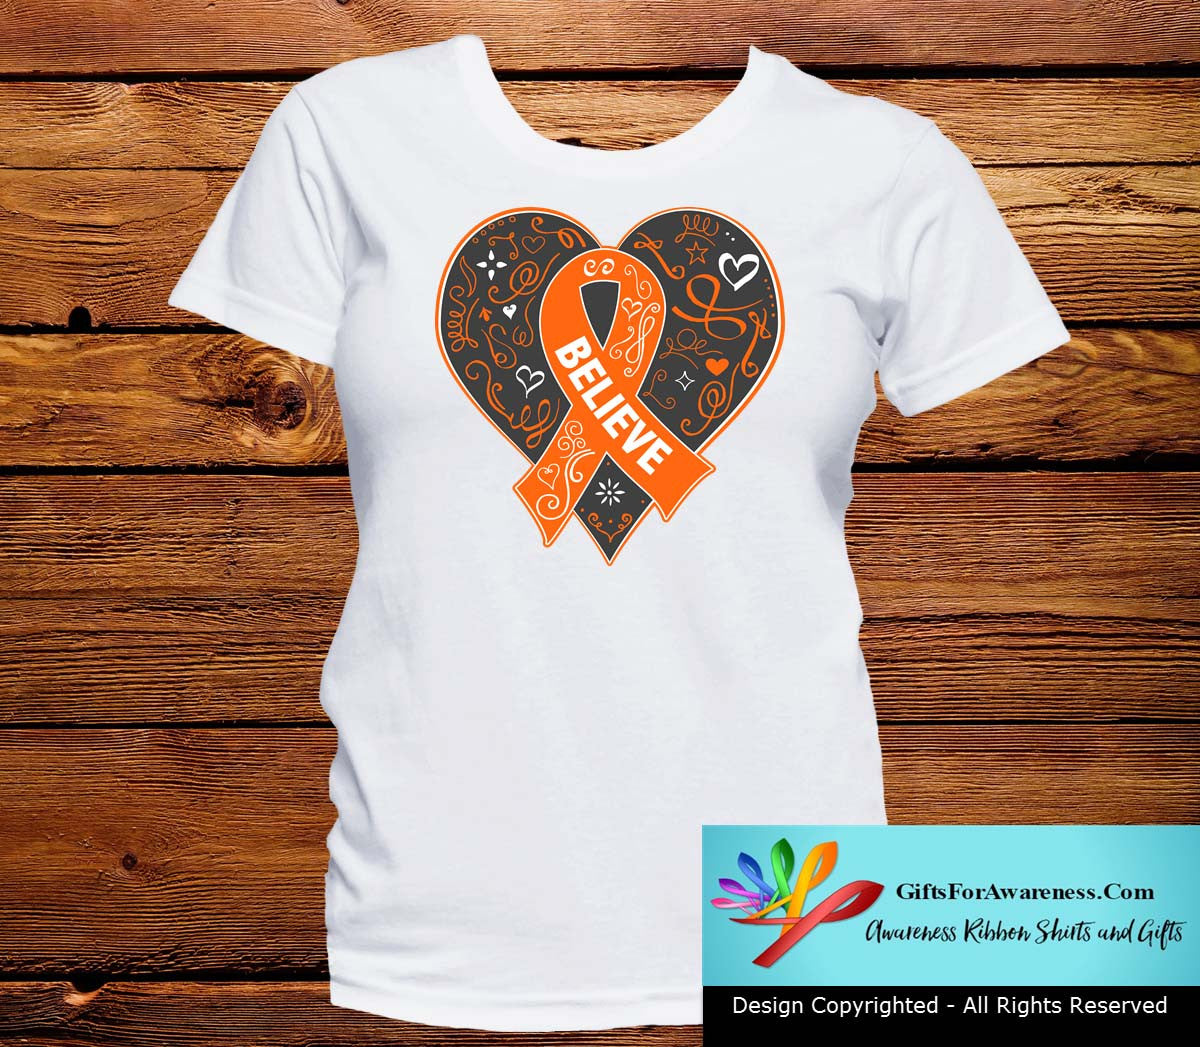 Kidney Cancer Believe Heart Ribbon Shirts - GiftsForAwareness